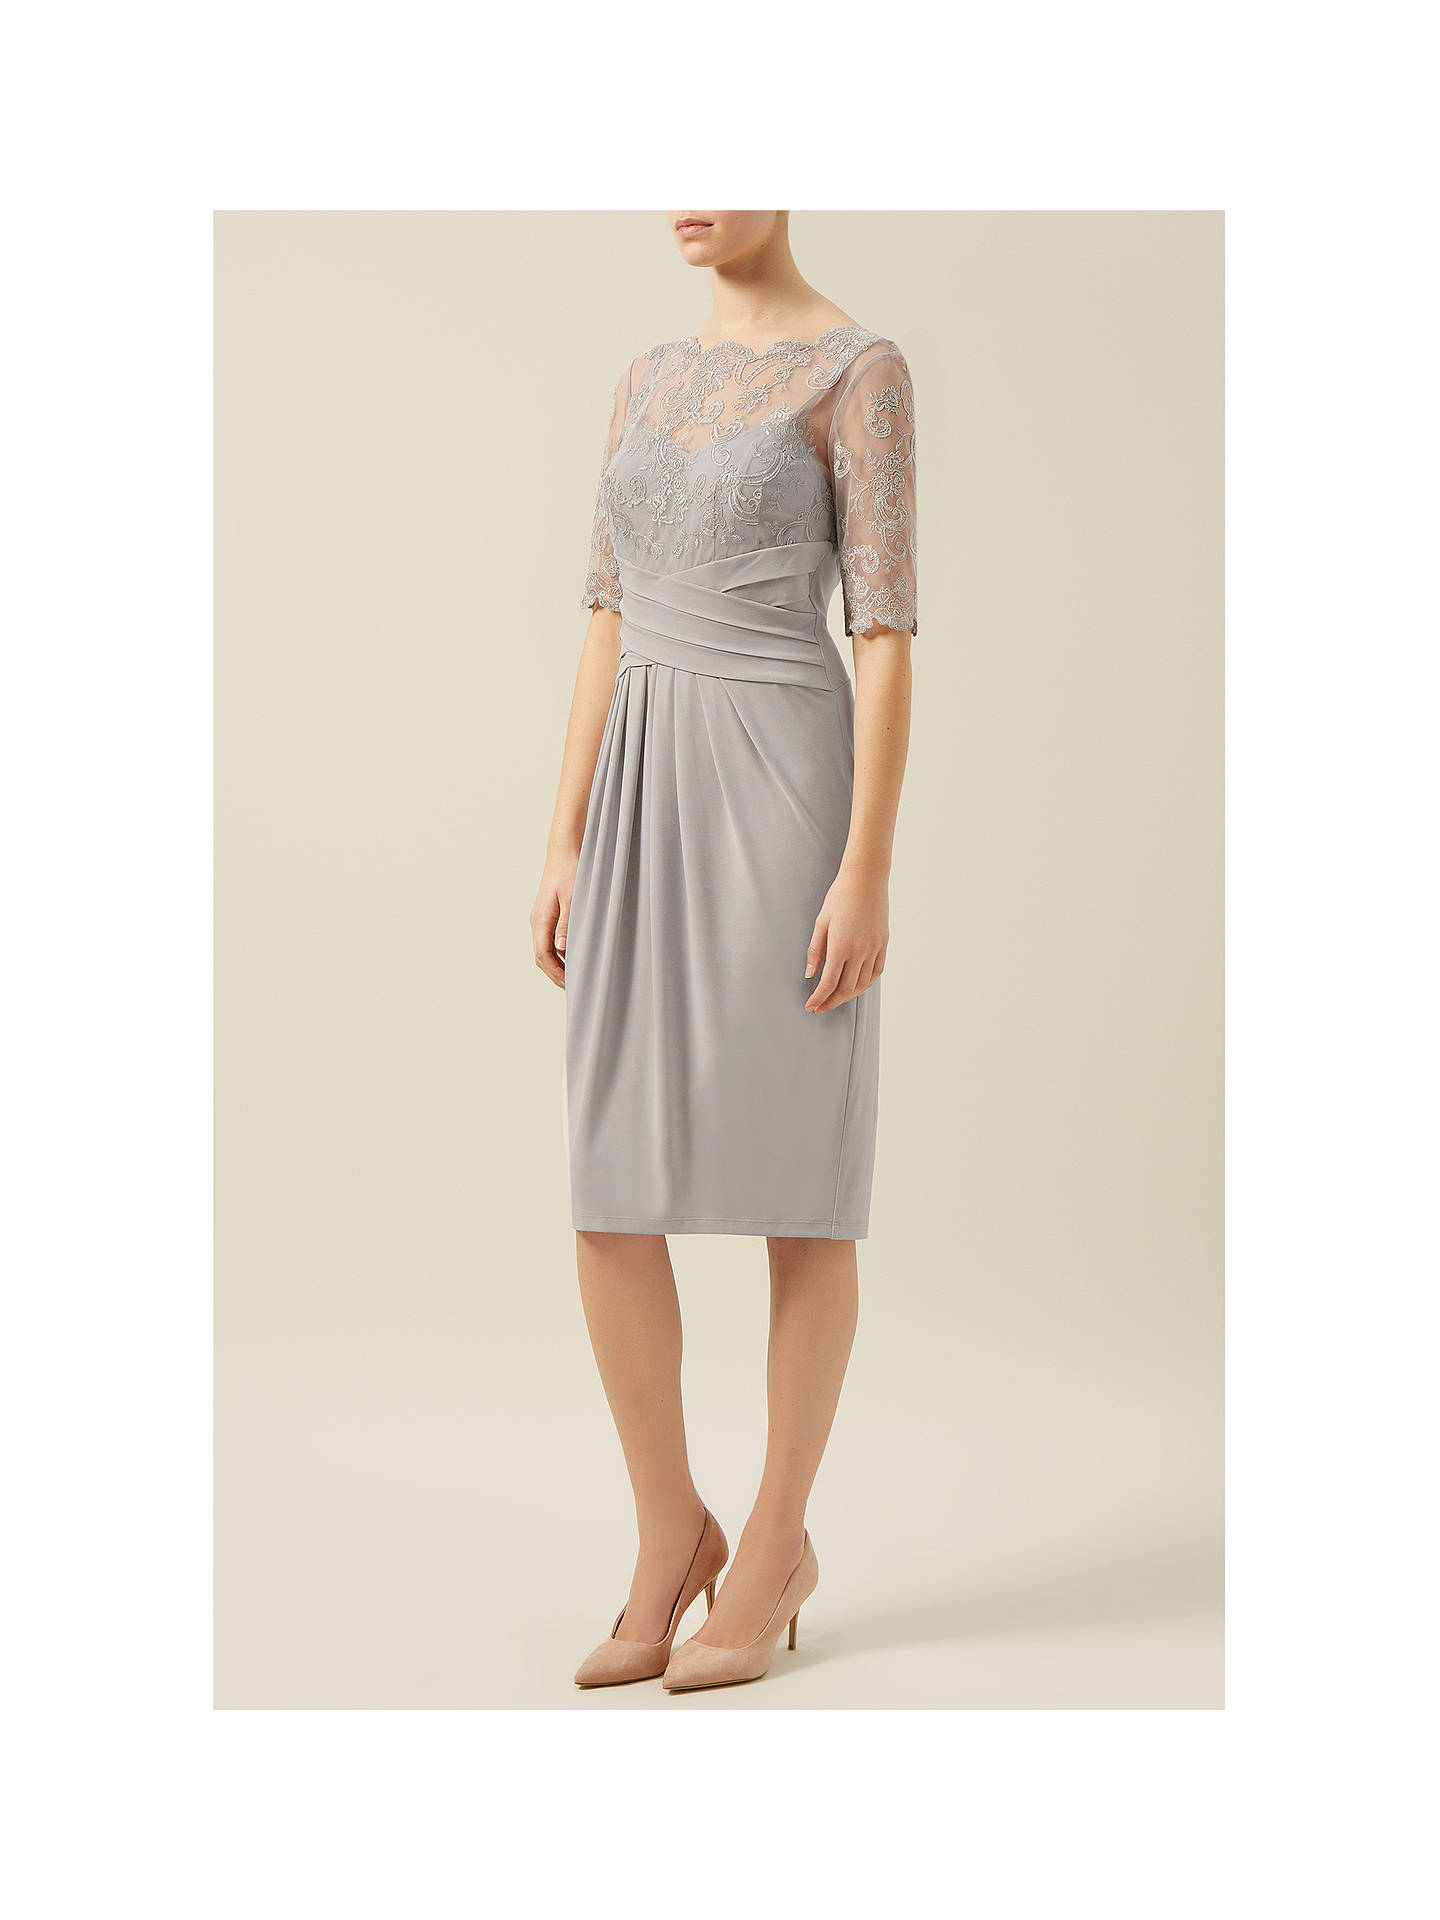 1a4dfb0e160 ... Buy Kaliko Lace and Jersey Dress, Light Grey, 8 Online at johnlewis.com  ...